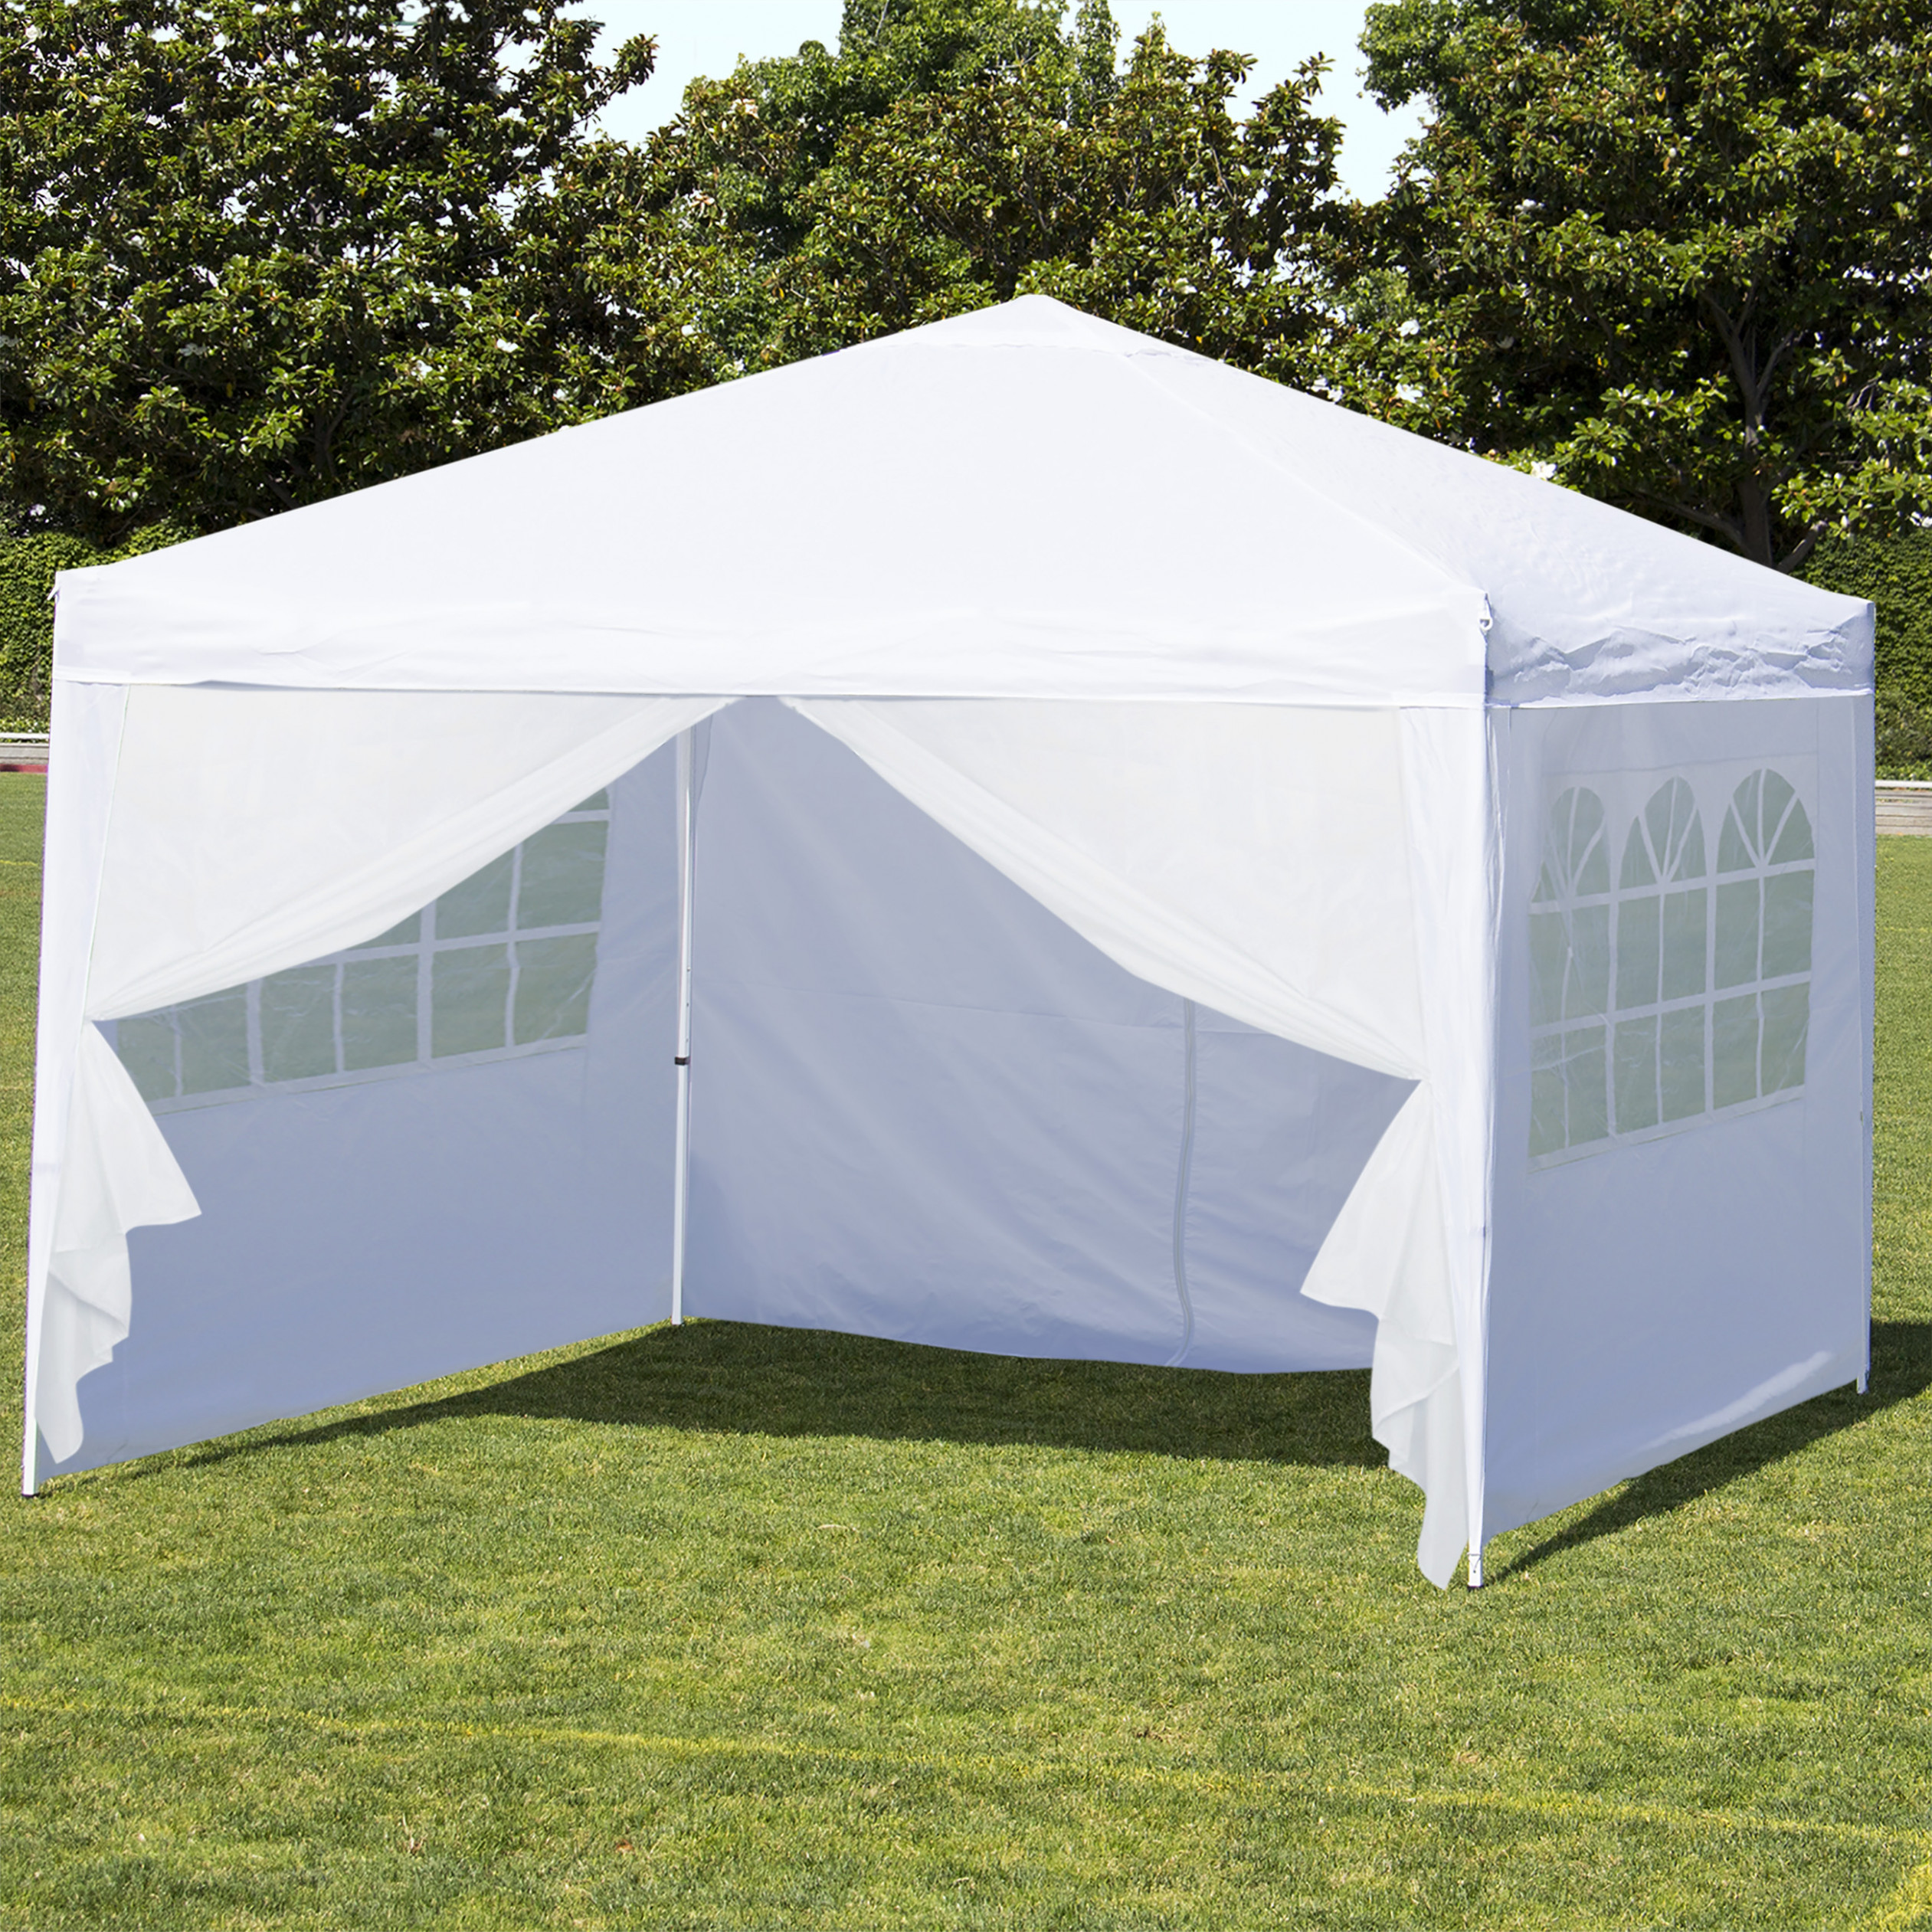 Abba Patio 11 X 11 Ft Heavy Duty Beige Carport, Car Canopy Versatile Shelter With Sidewalls Carport Canopy With Sides